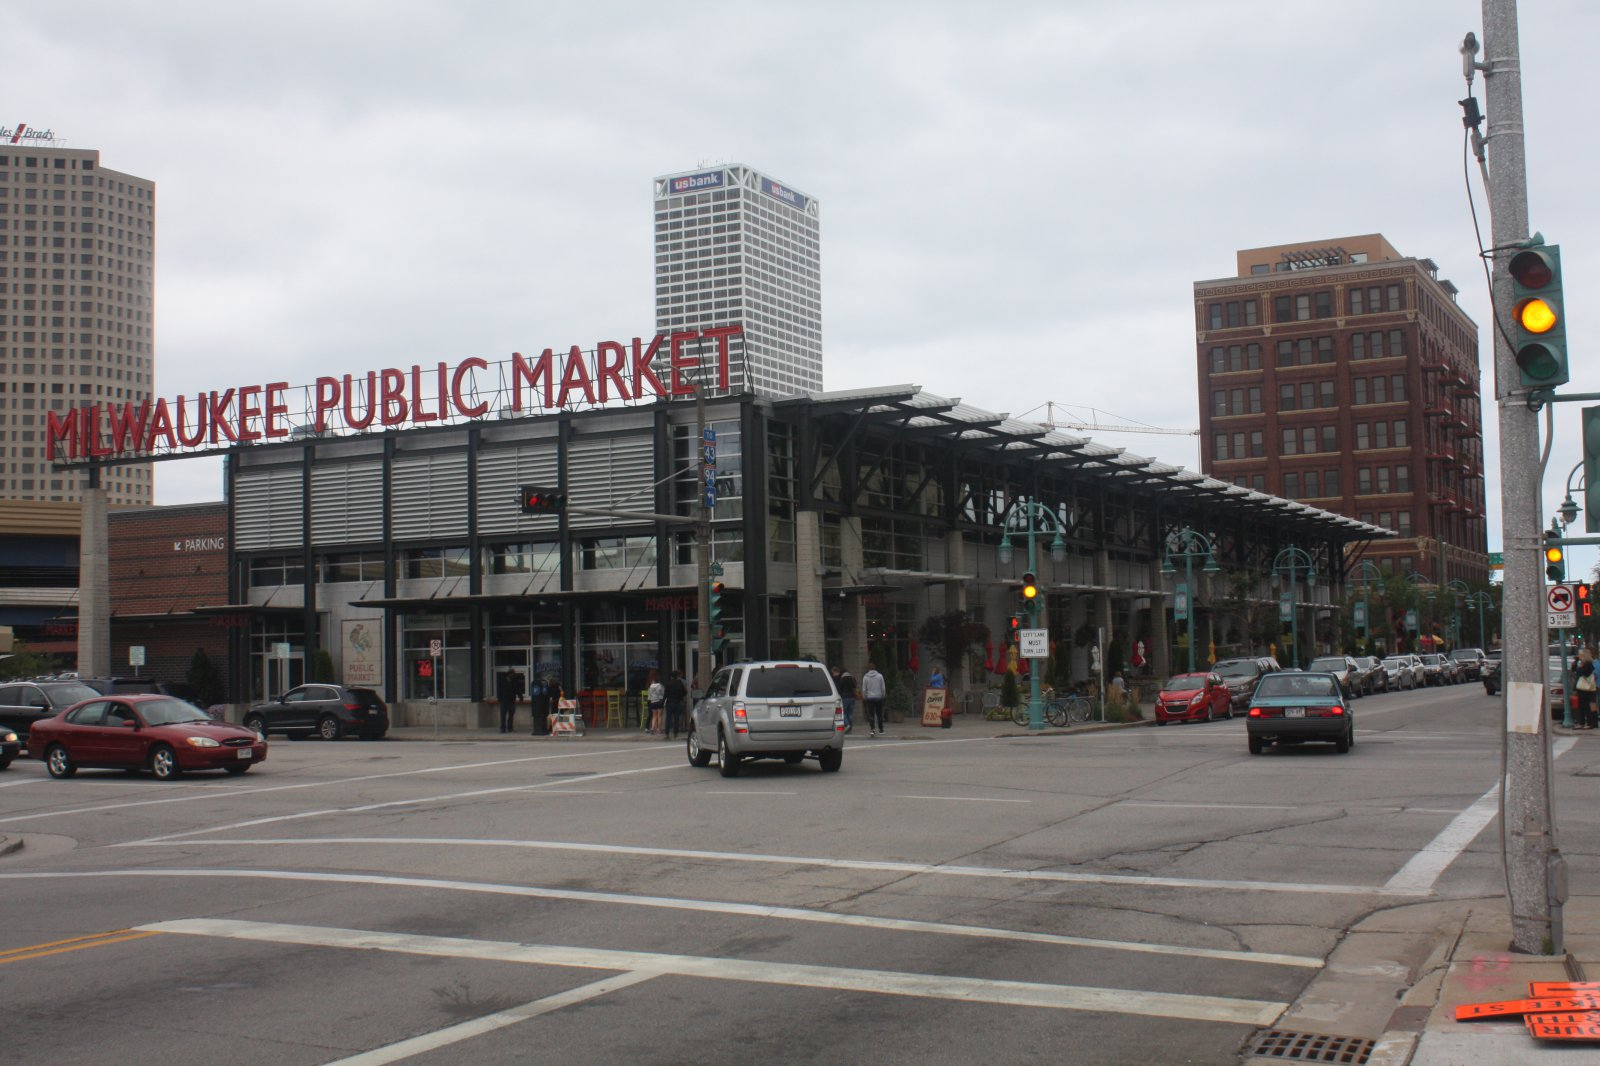 Milwaukee Public Market is busy on a grey day